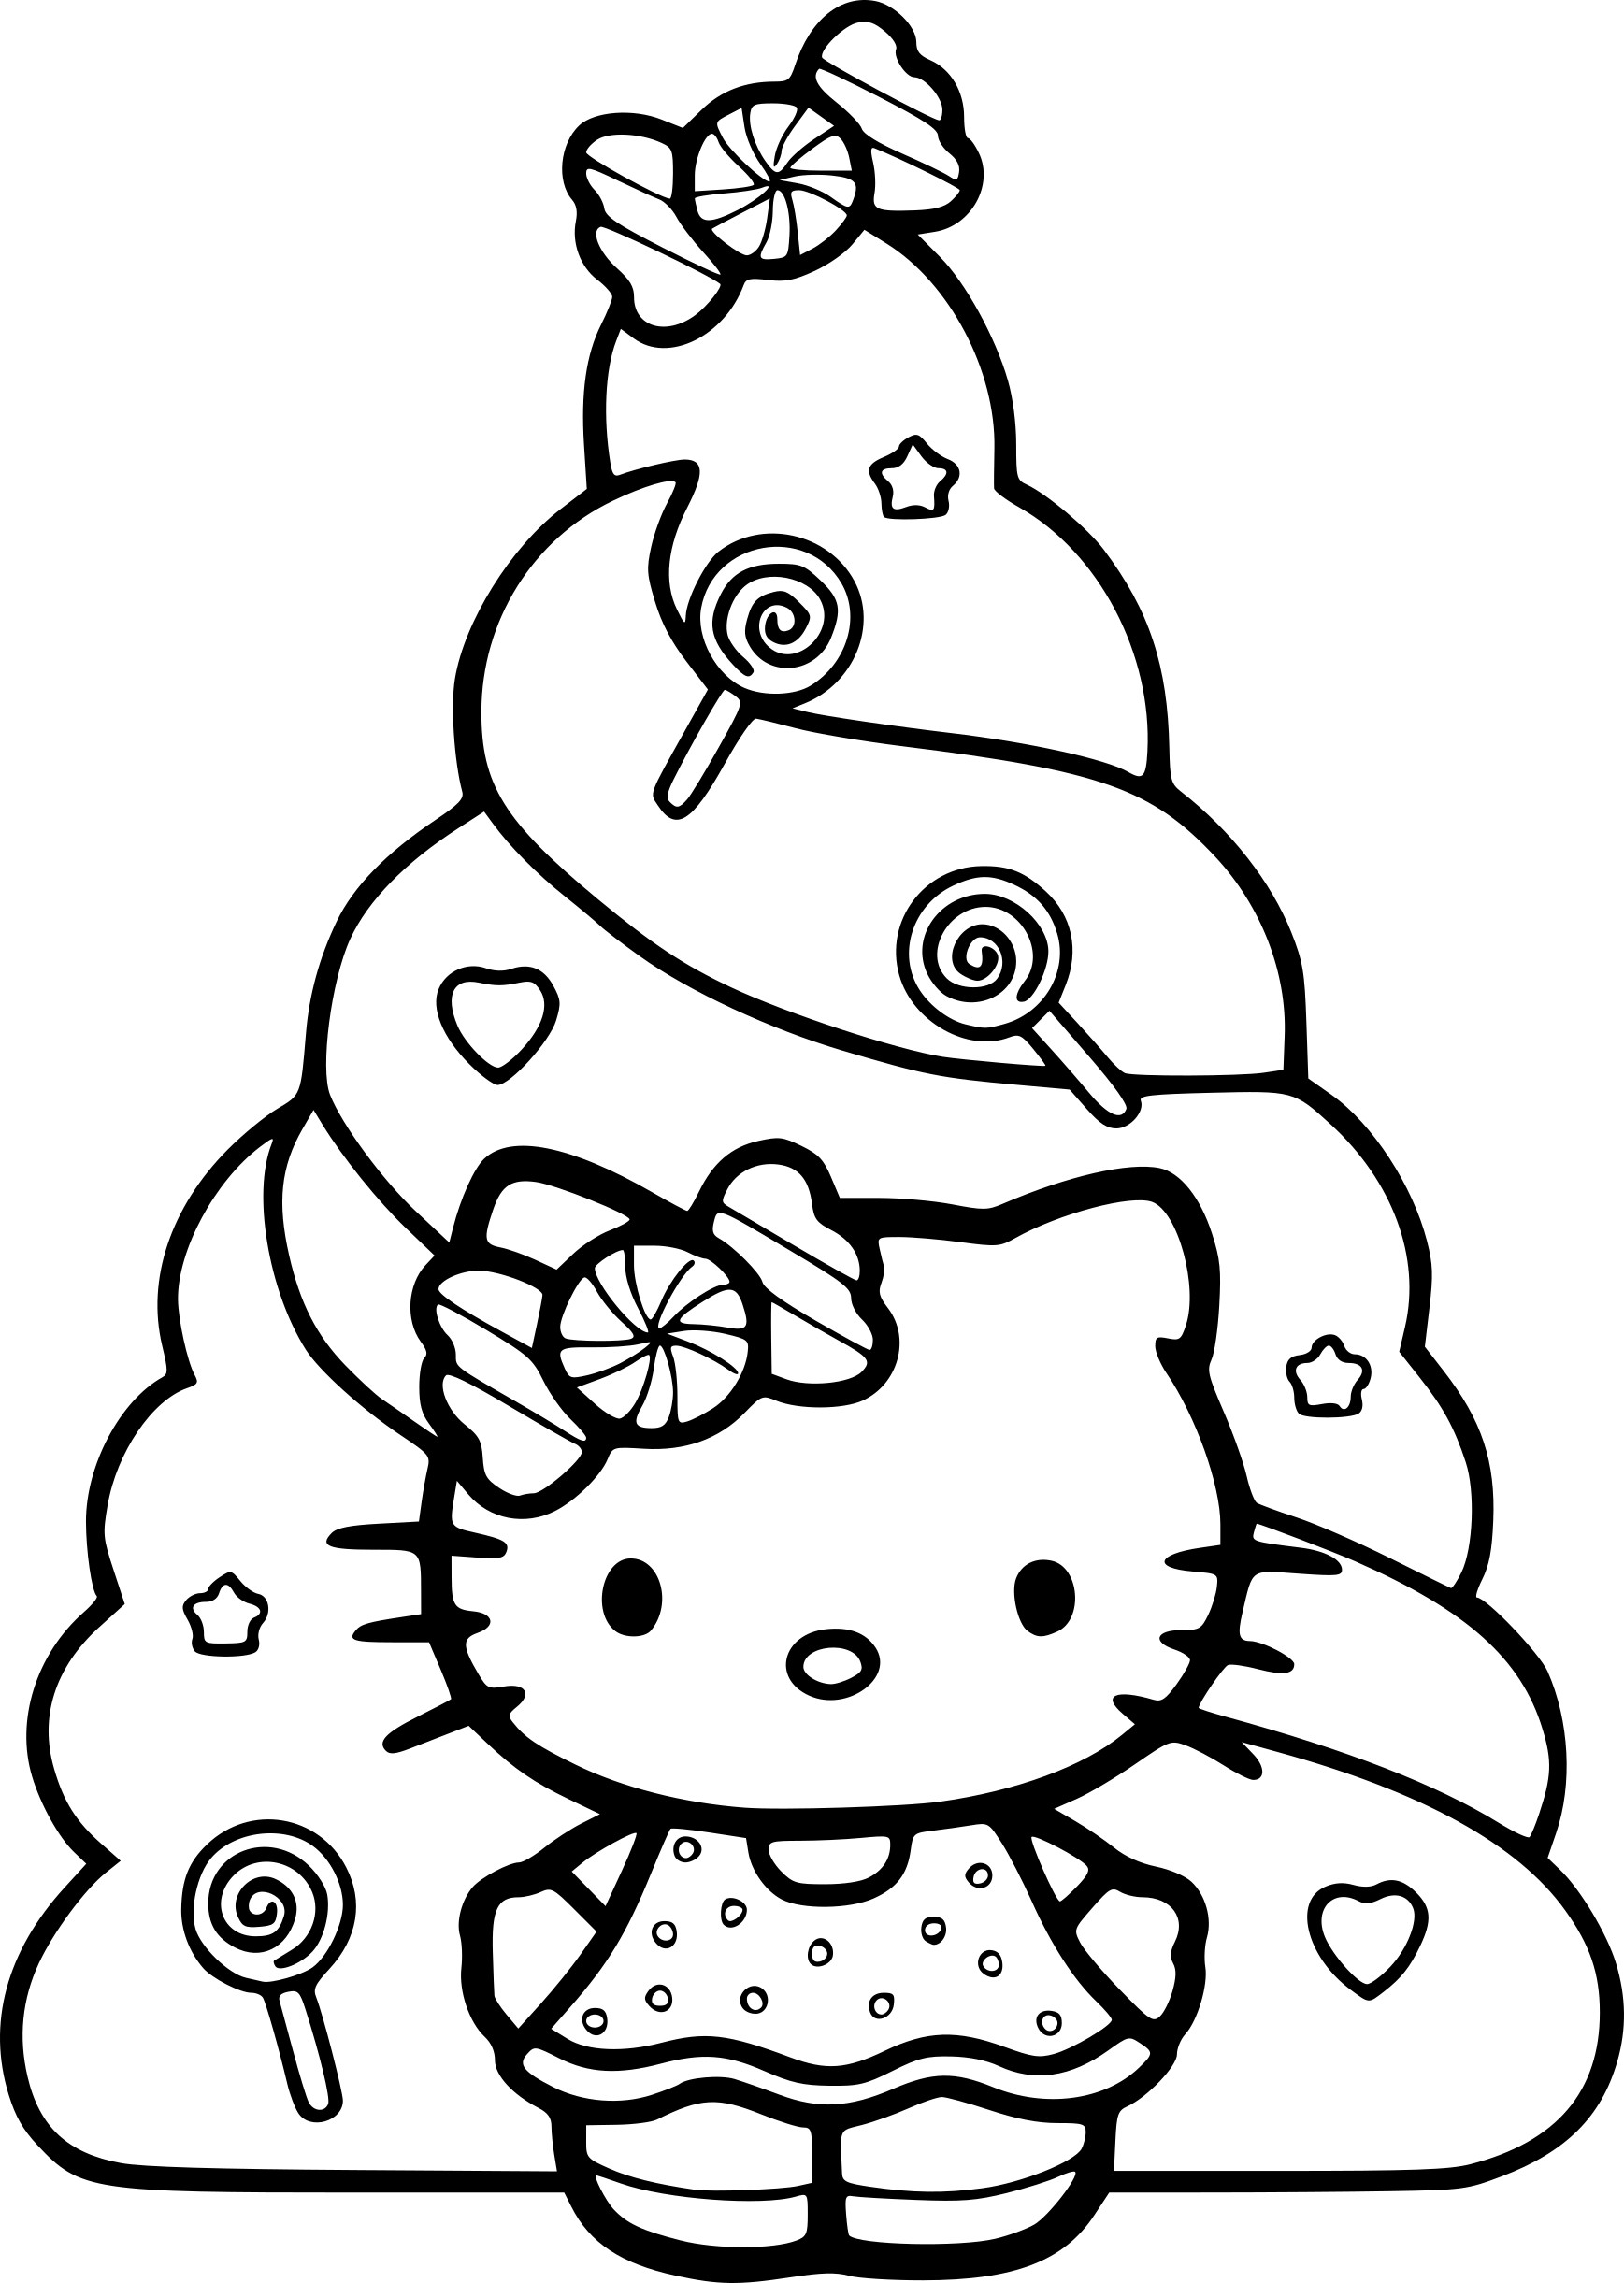 Coloriage Hello Kitty Noel Dessin A Imprimer Sur Coloriages Info